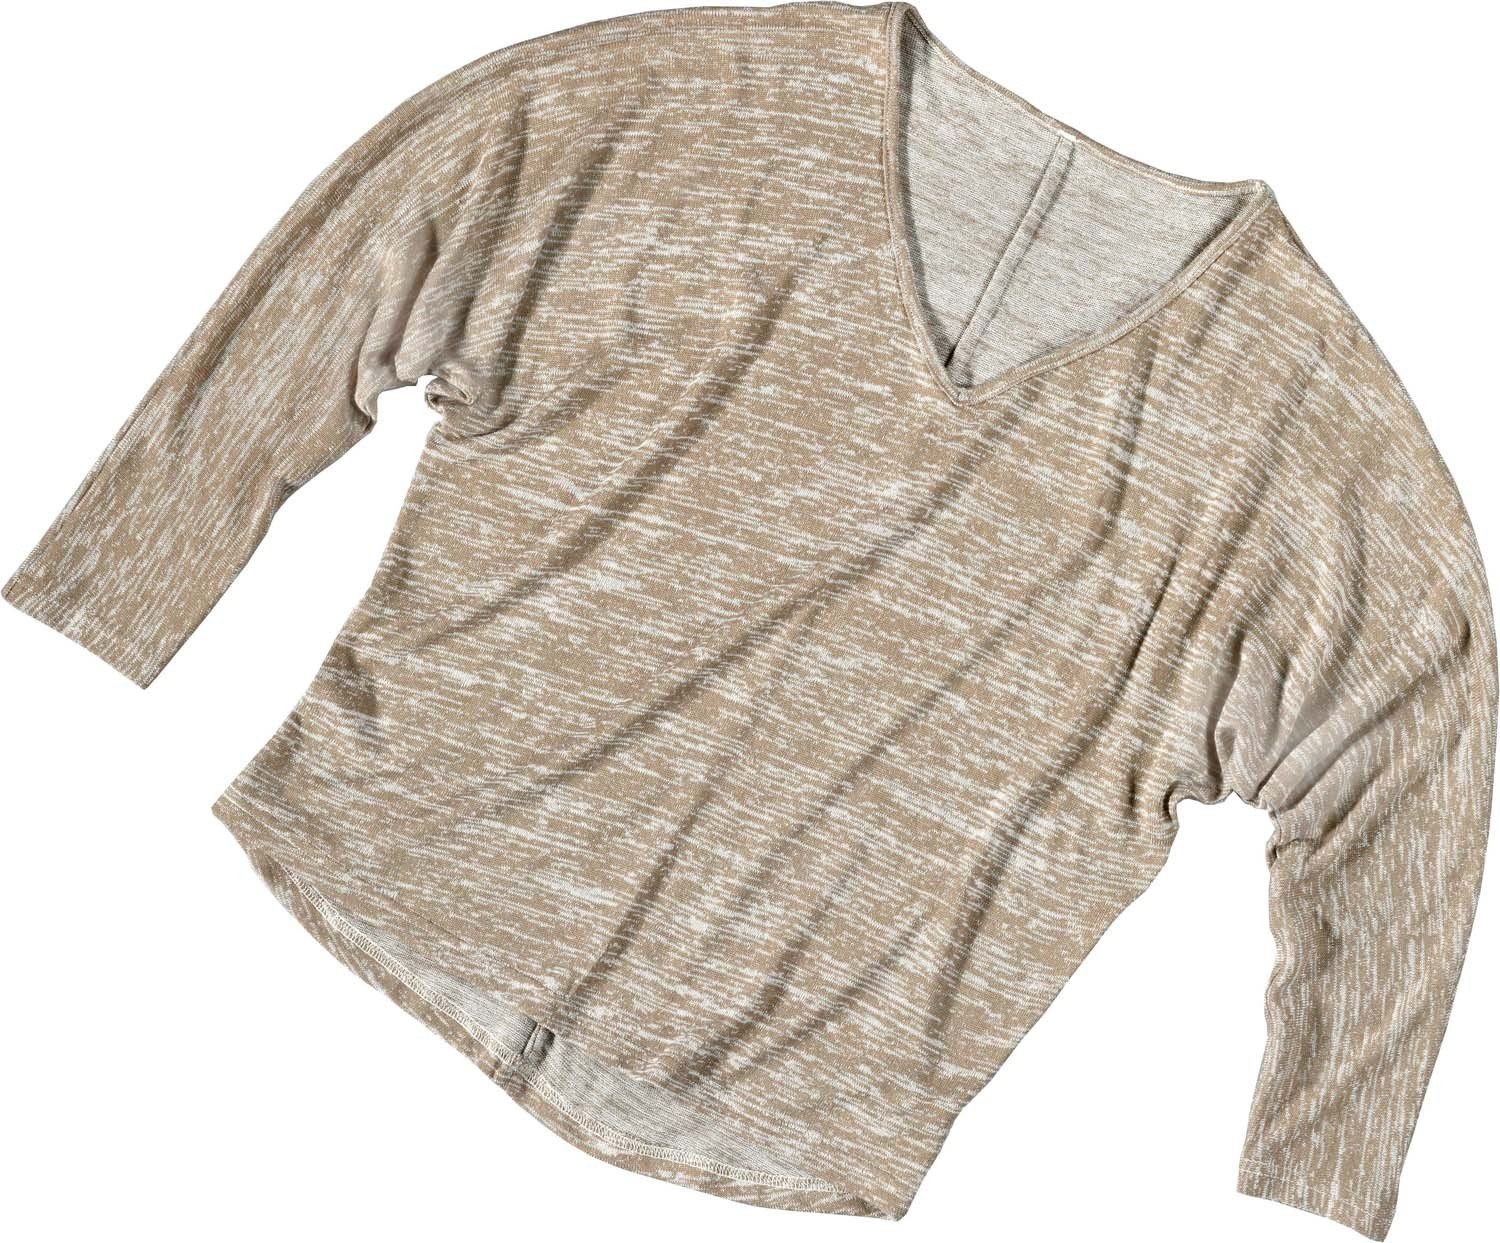 D-3/4-Arm-Top,Flederm.beige XL 008 - 1 - Ronja.ch